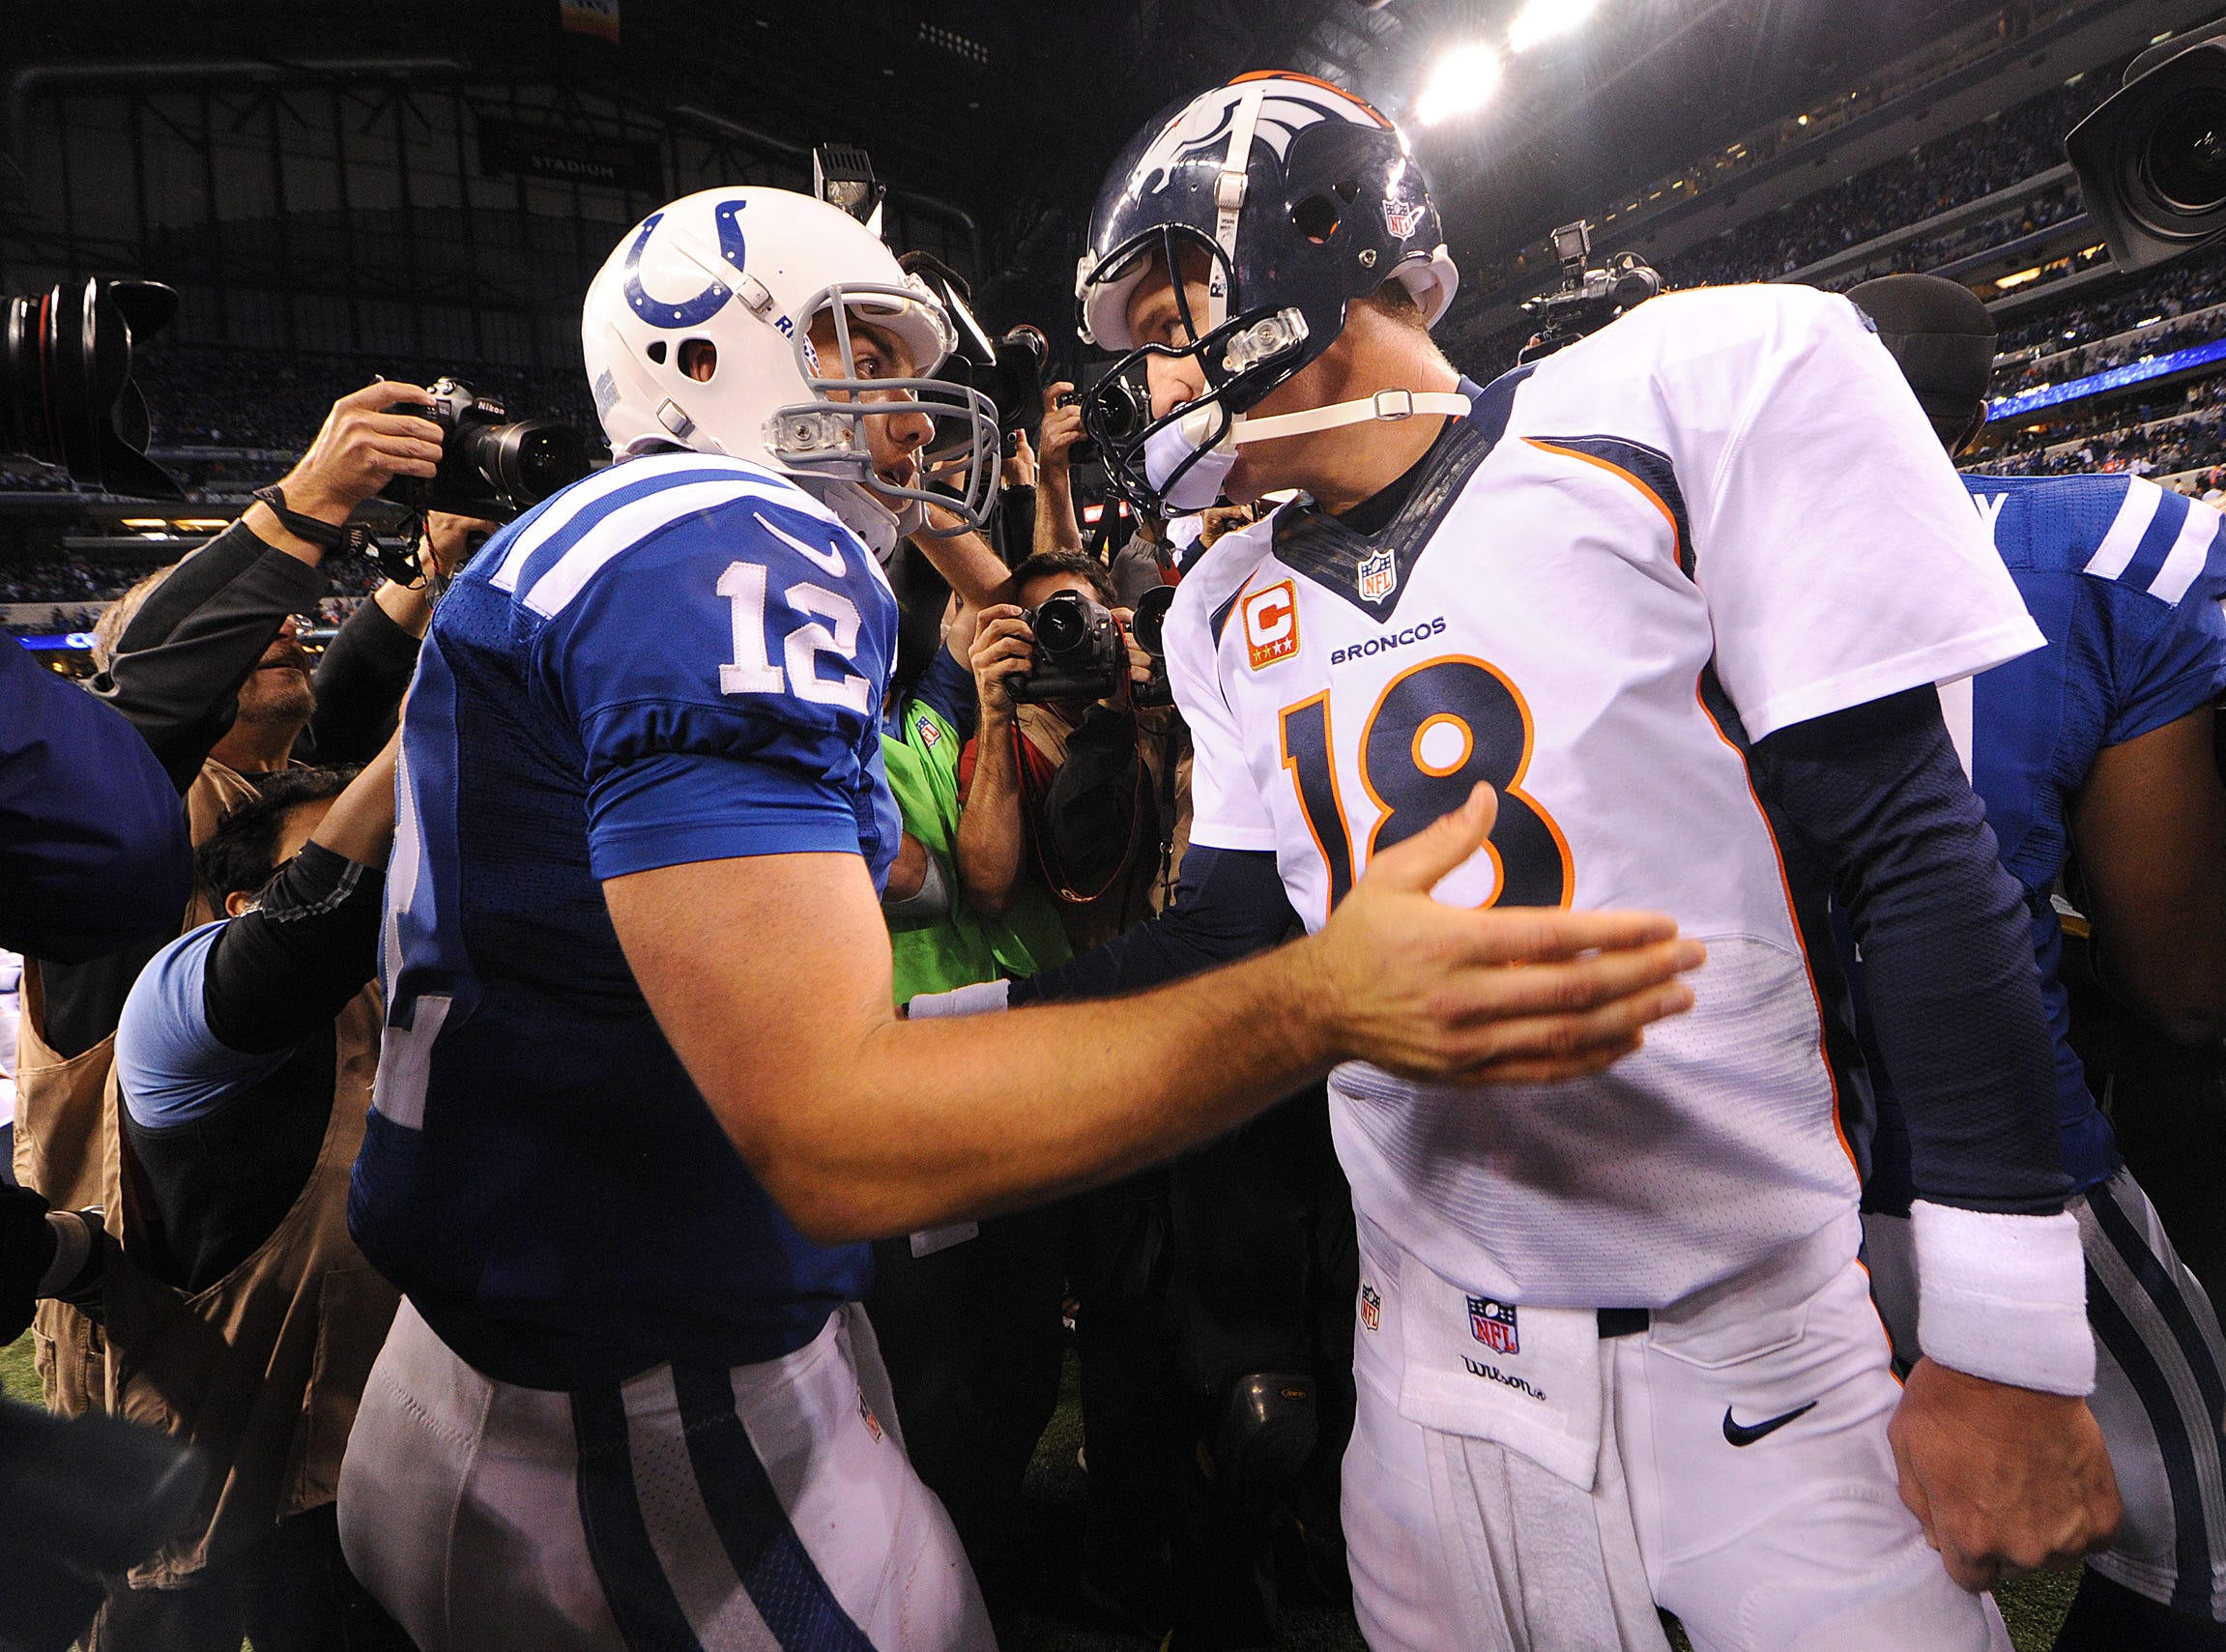 Indianapolis Colts' Andrew Luck (12) and Denver Broncos' Peyton Manning (18) meet on the field after the Bronco's 39-33 loss to Colts on October 20, 2013, at Lucas Oil Stadium.